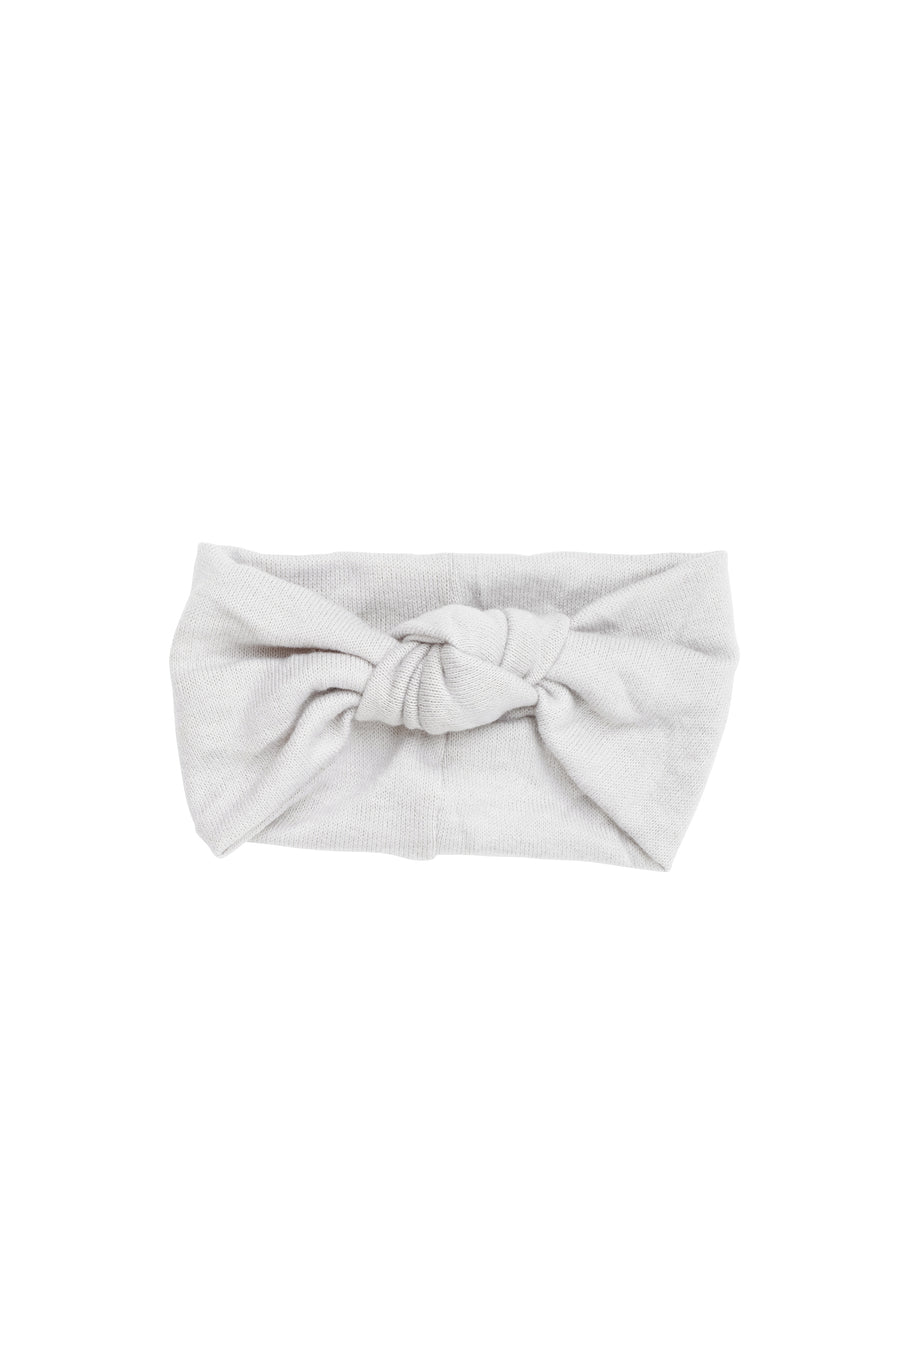 Knot Wrap - Winter White Wool